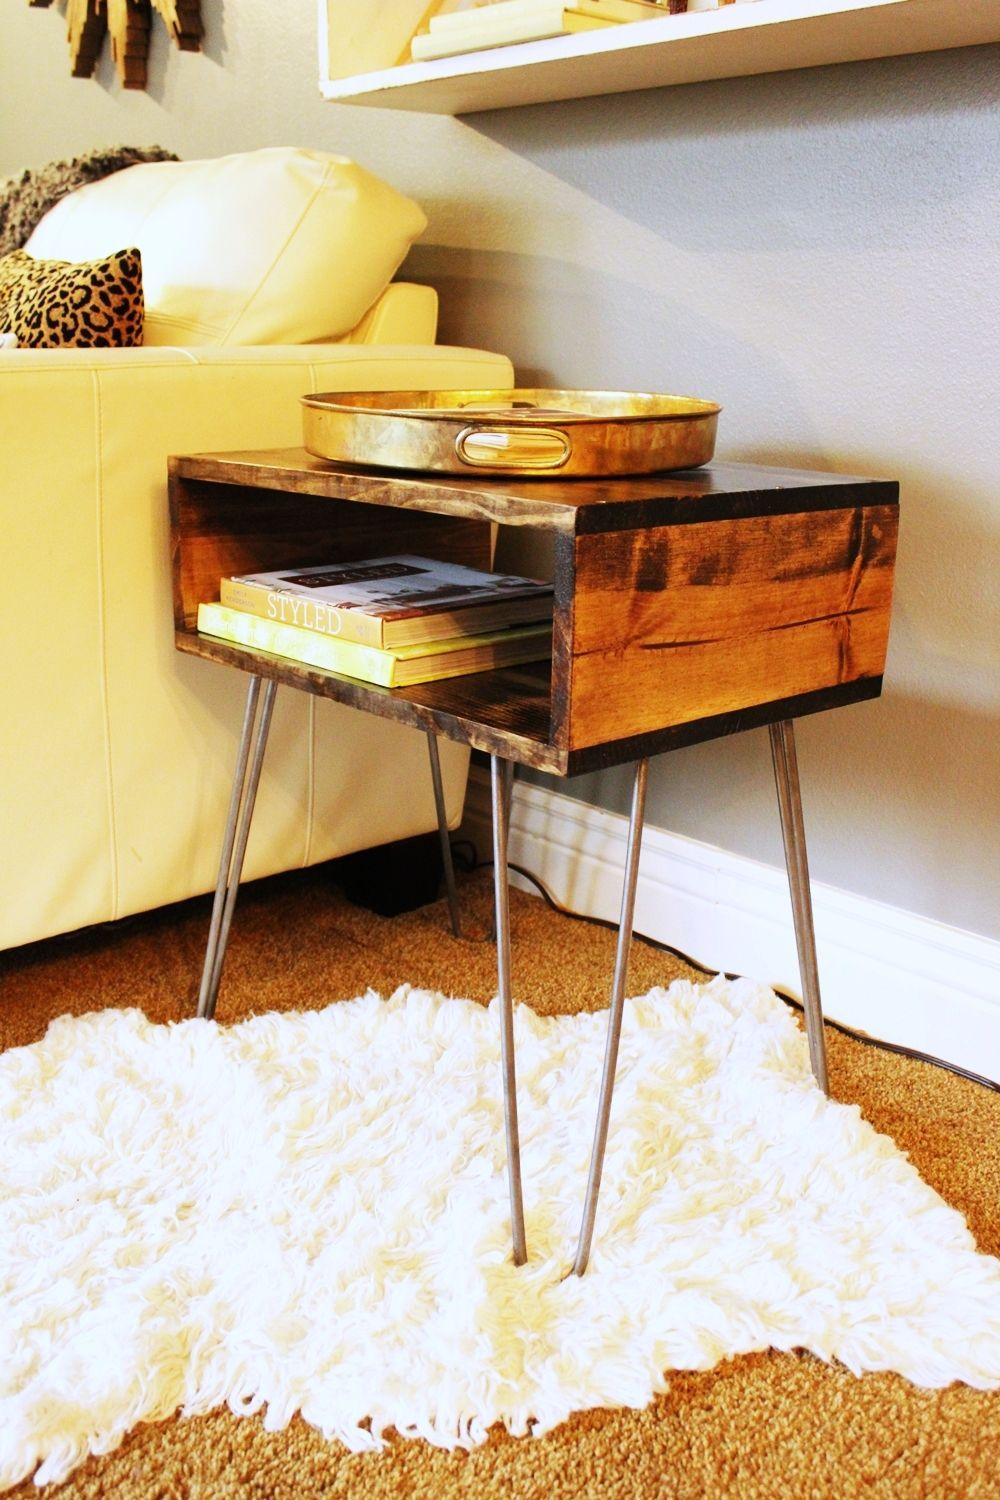 diy hairpin leg side table angle view accent legs outdoor cushions drawing painting rectangular nesting tables ikea white storage box chair round farmhouse dining shelves long